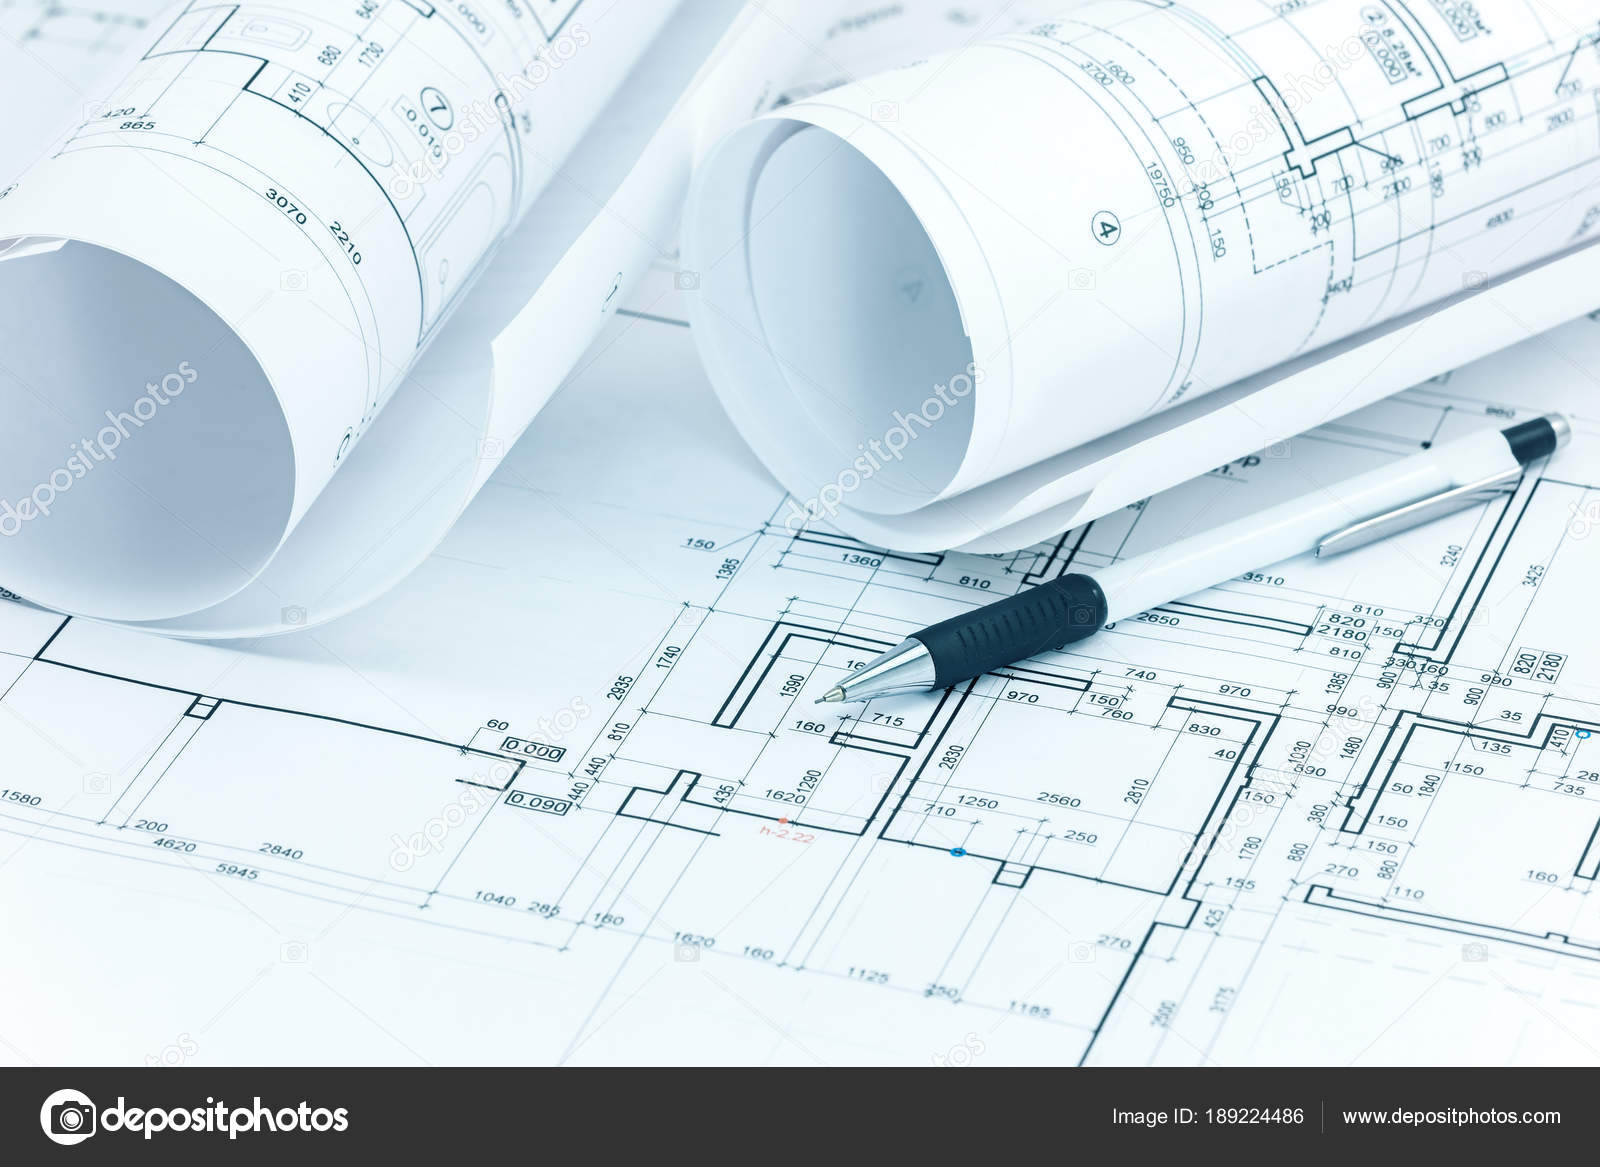 Architectural plans blueprint rolls and pencil on architect desk architectural plans blueprint rolls and pencil on architect desk stock photo malvernweather